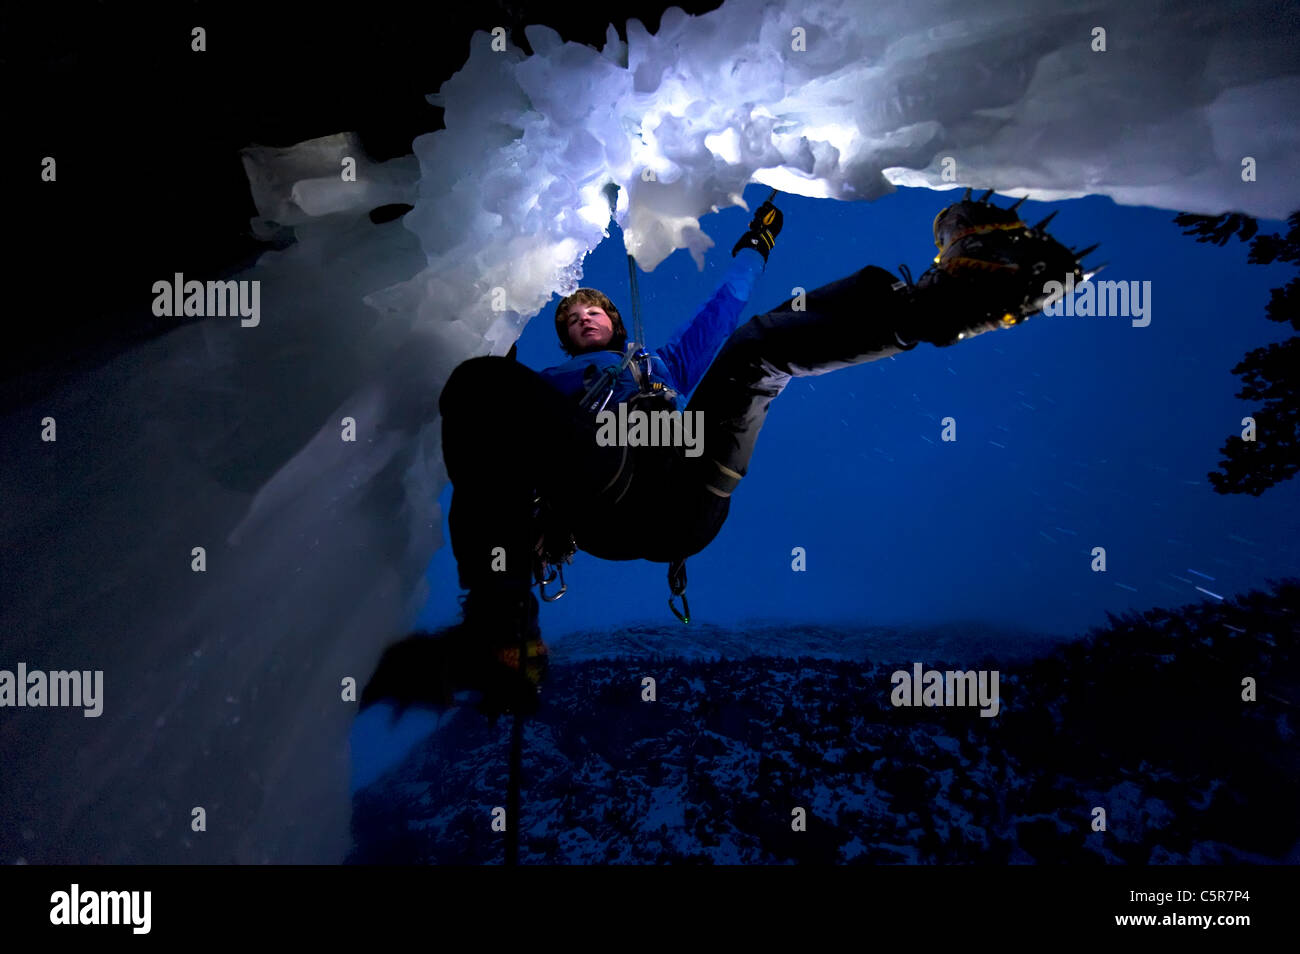 Ice Climbing at night on the edge of a cave. Stock Photo